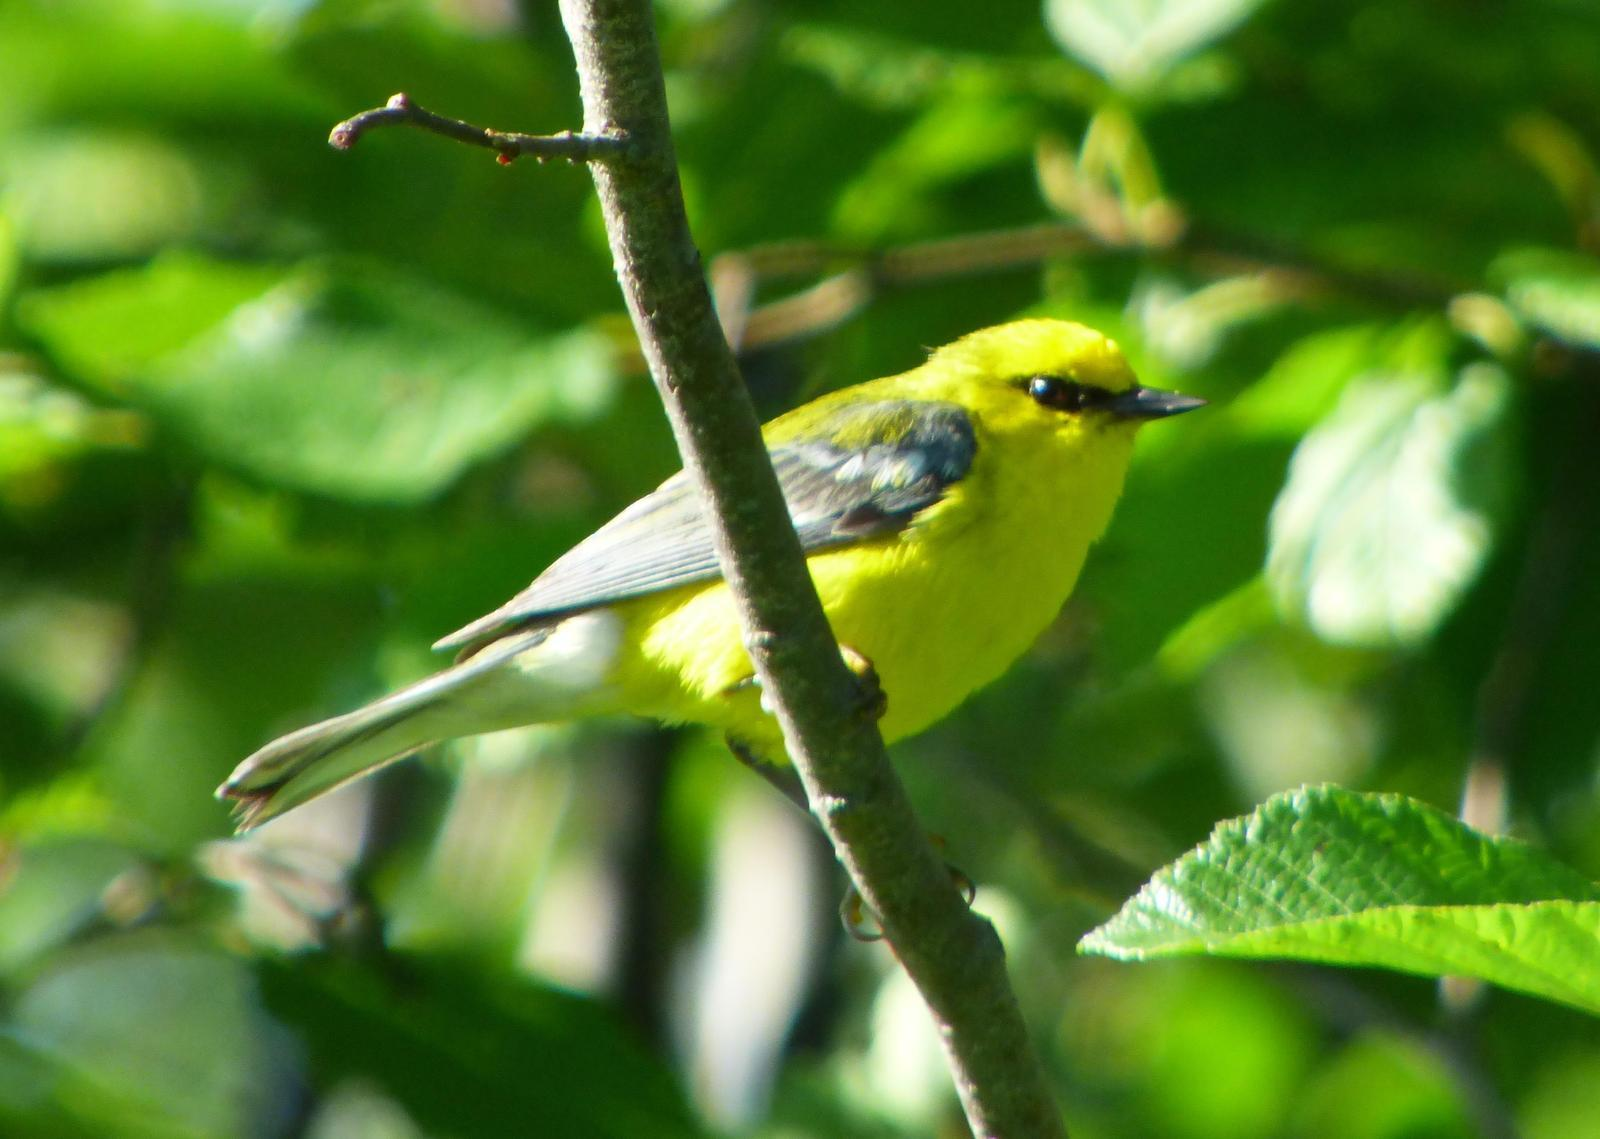 Blue-winged Warbler Photo by Phil Ryan